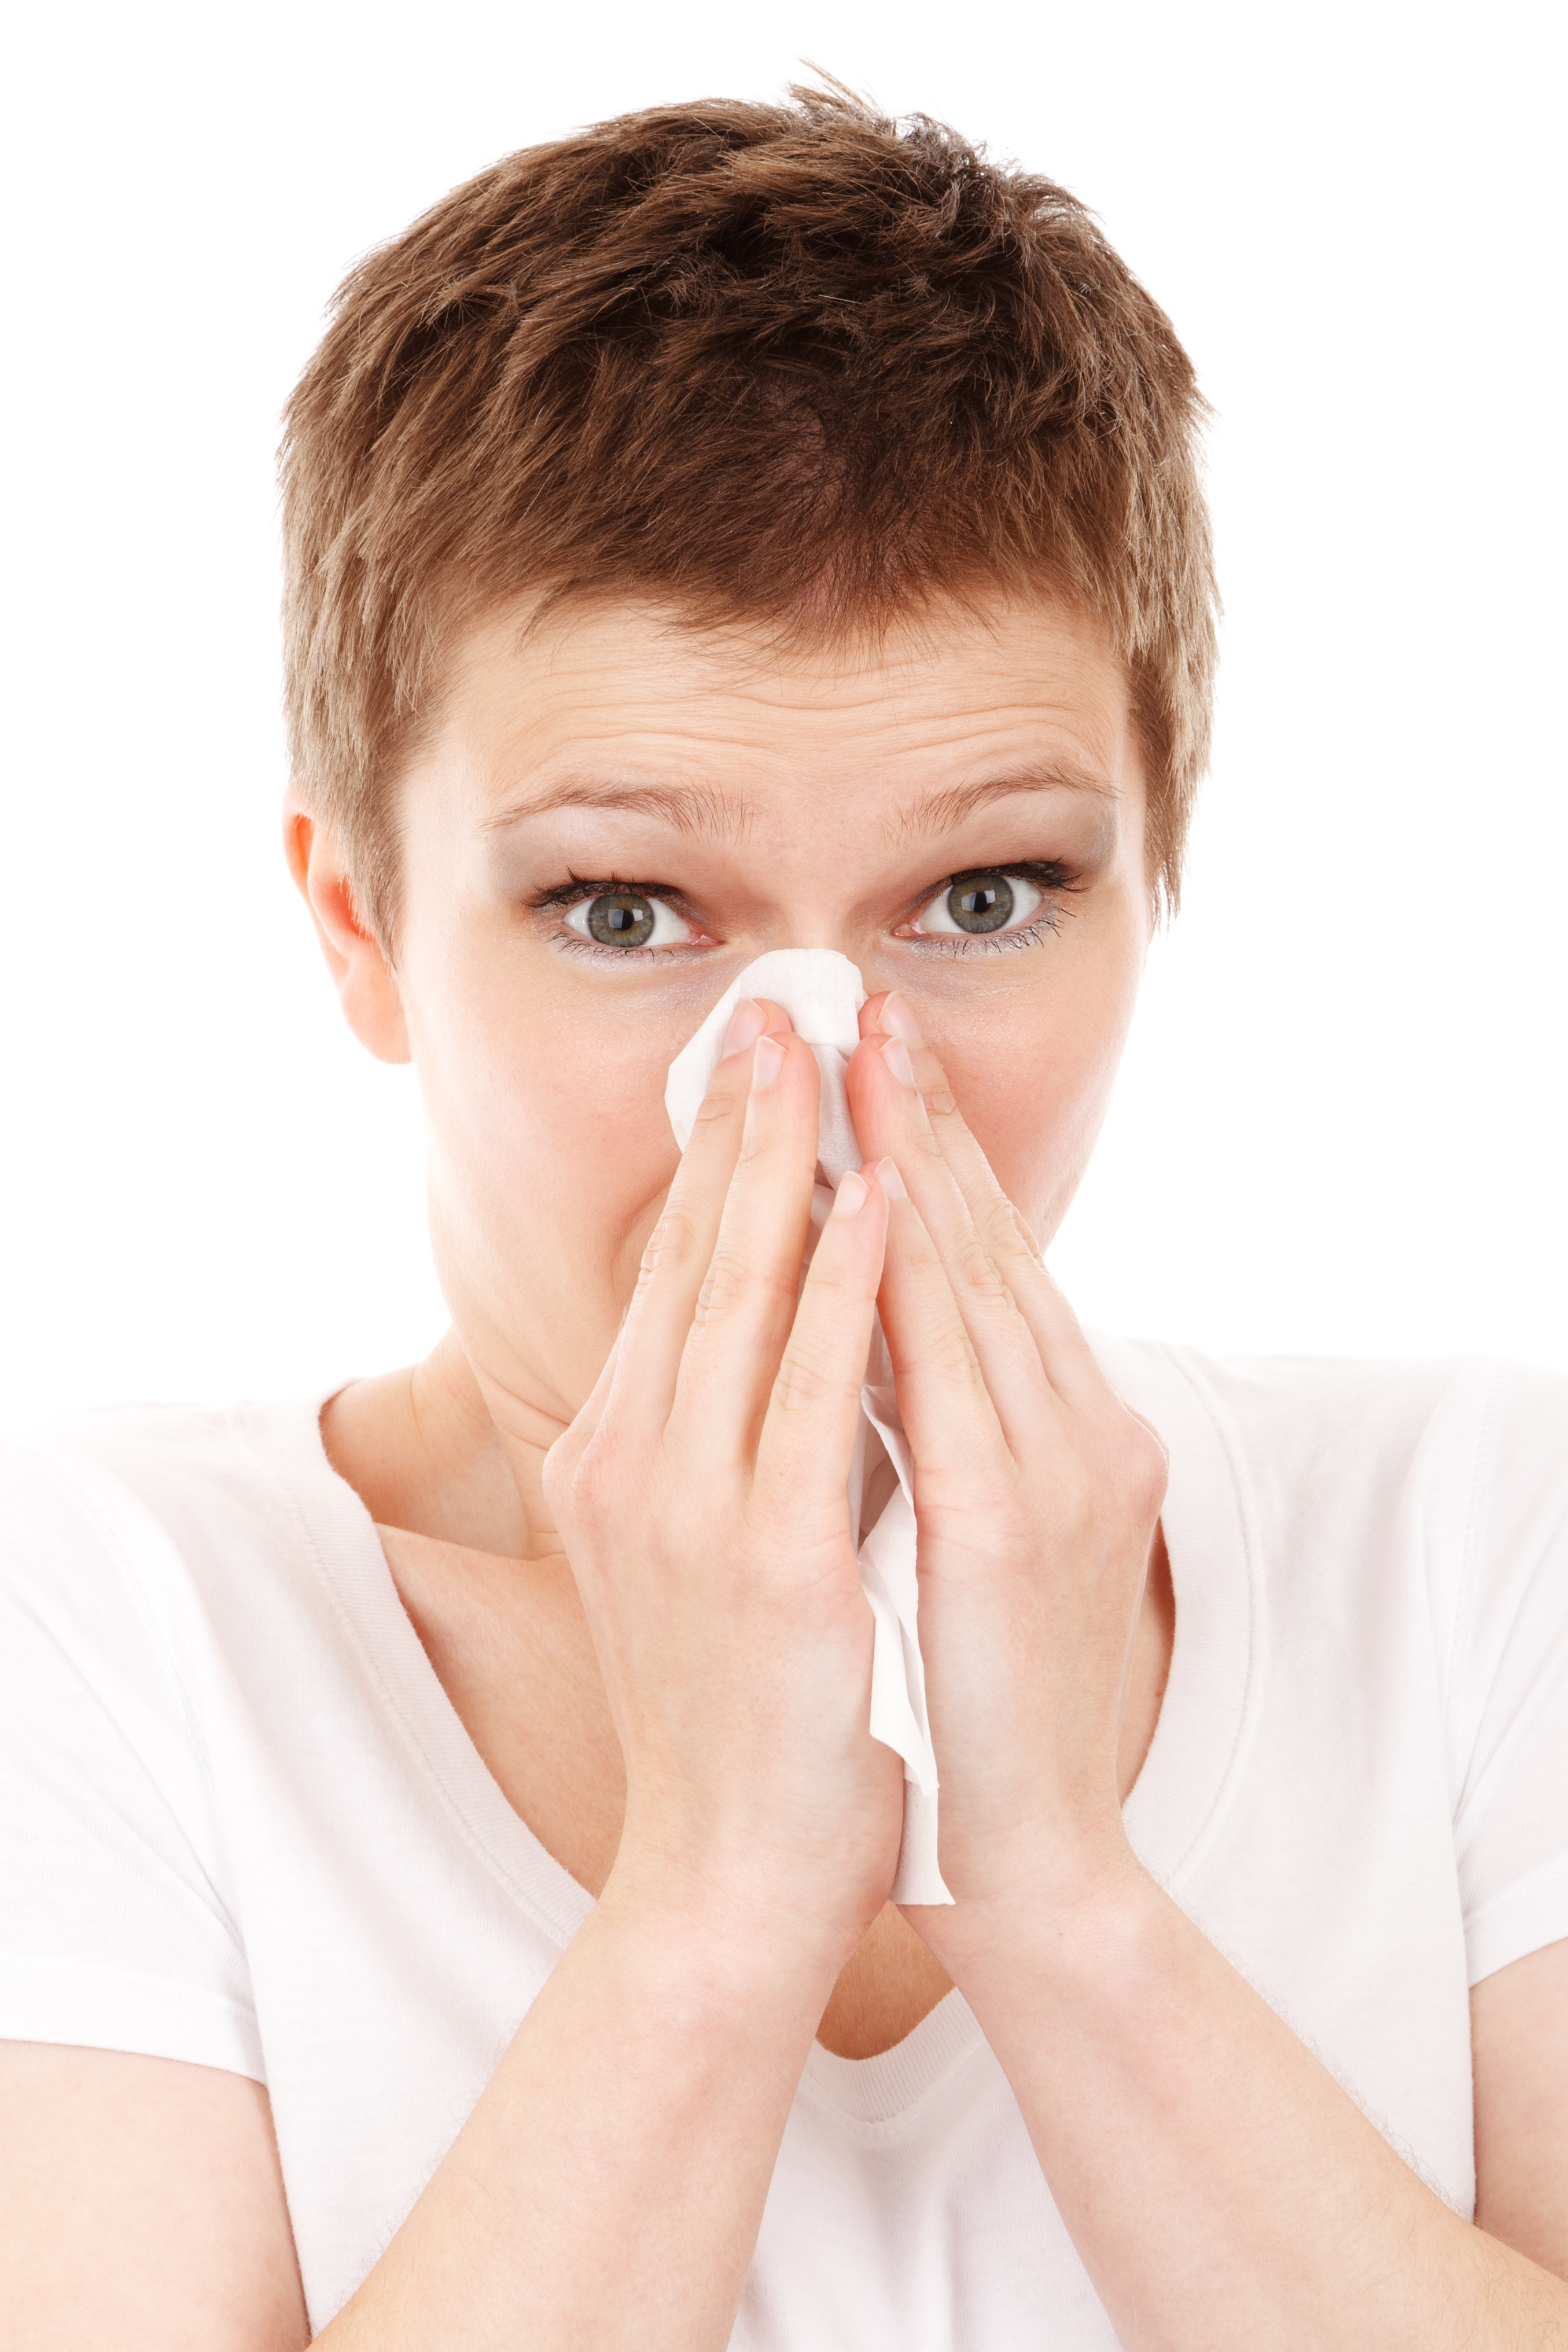 woman_with_a_cold_or_allergy_198620.jpg